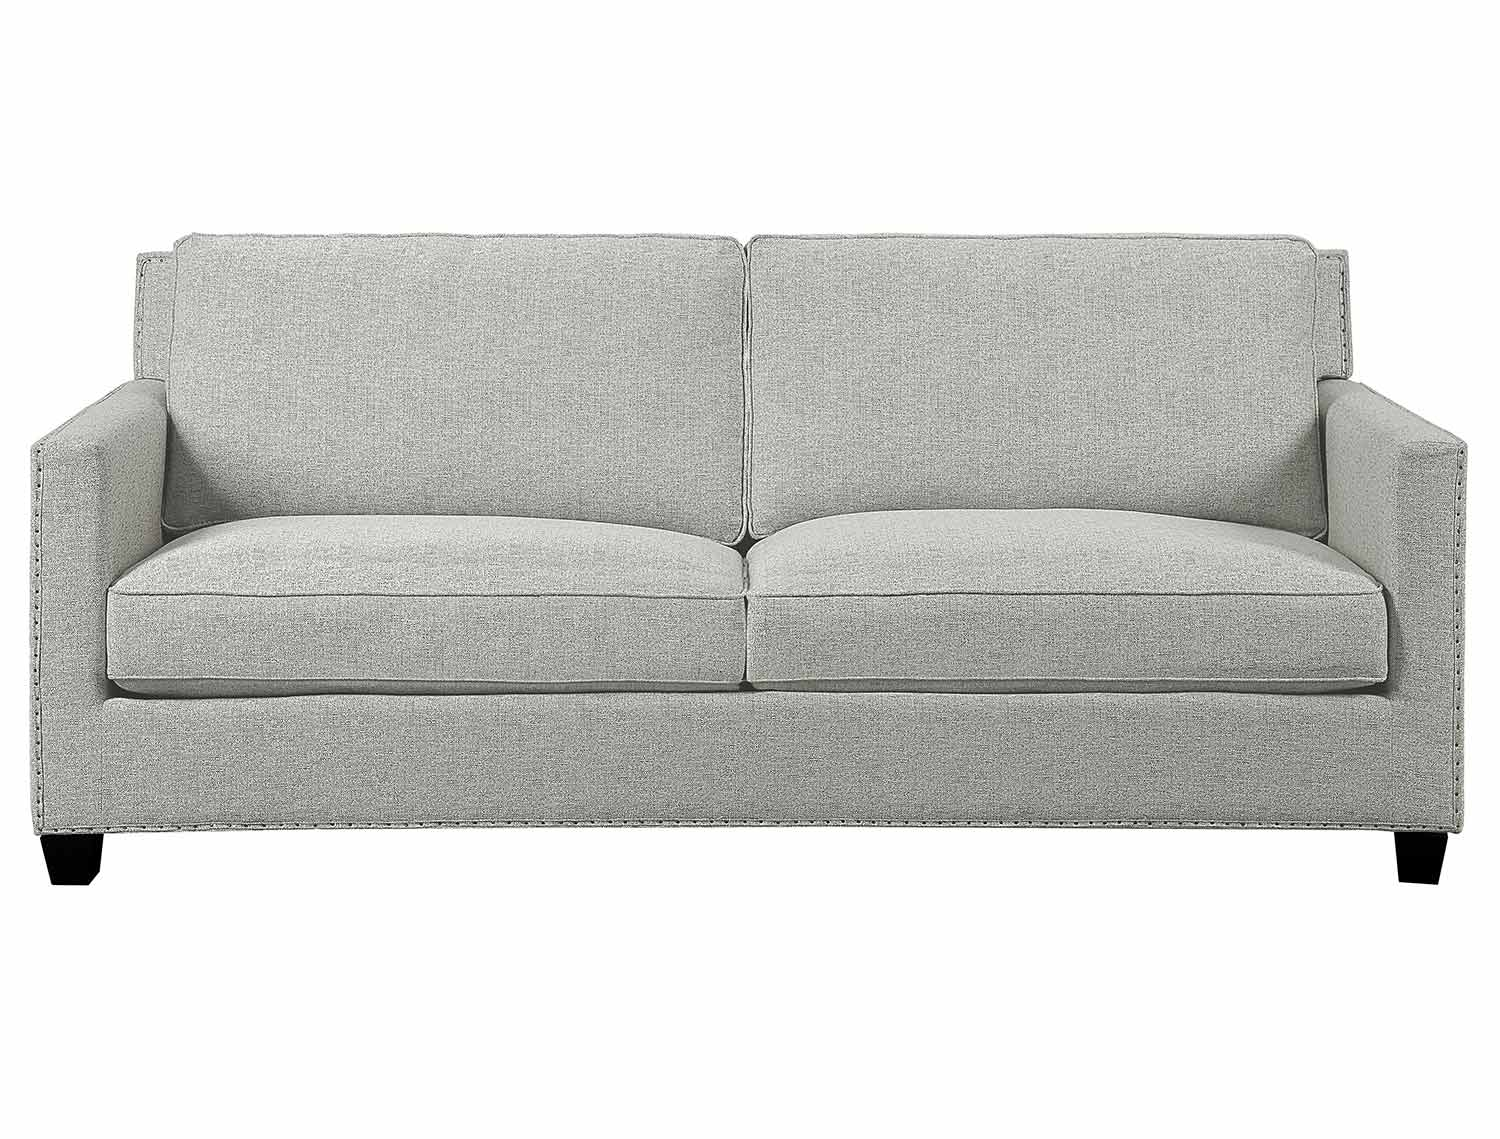 Homelegance Pickerington Sofa - Light gray